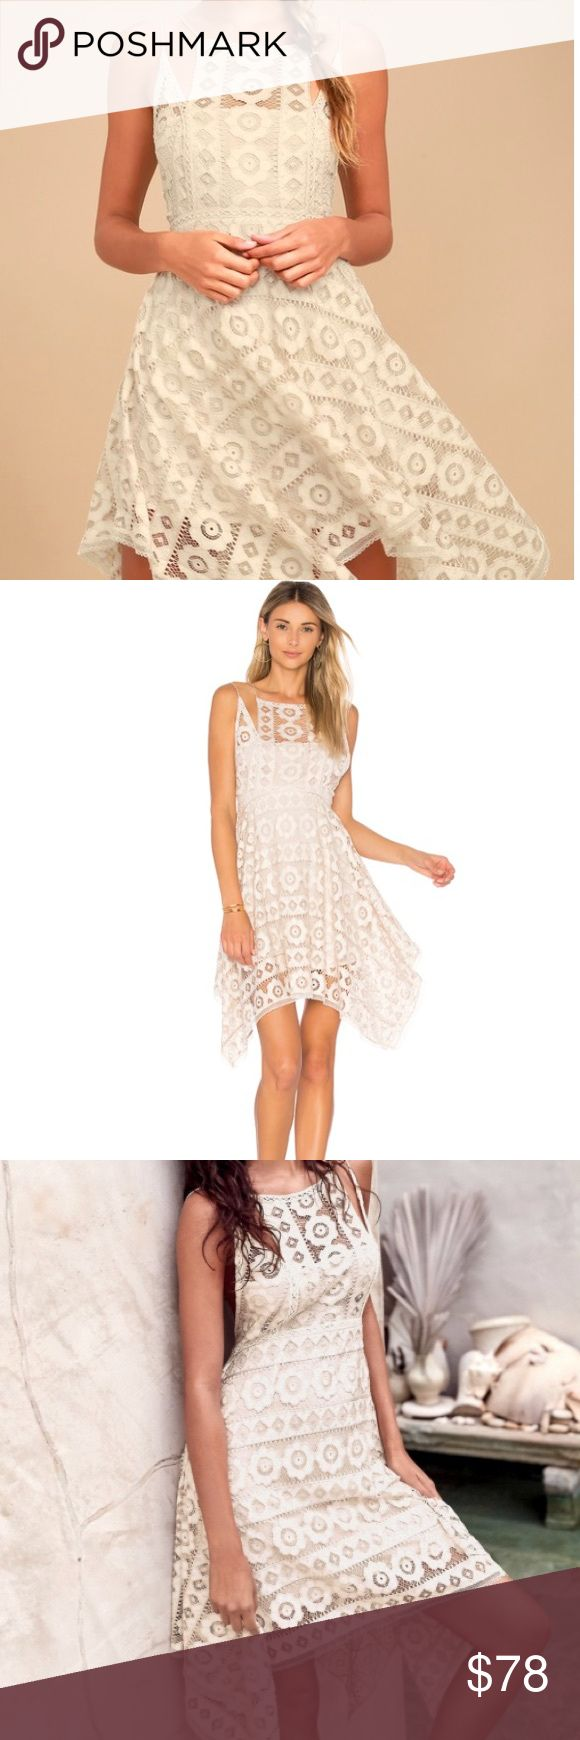 NEW Free People Just Like Honey Ivory Lace Dress 6 So pretty and feminine, this lacey mini dress features an asymmetrical hem with a unique high neckline. Perfect for a spring/summer function. Sold out online. Very beautiful and detailed dress.  * Lined * Hidden back zipper closure * Fit-and-flare shape Measurements for size 6 * Bust: 34 in * Waist: 29 in * Length: 32 in Free People Dresses Asymmetrical